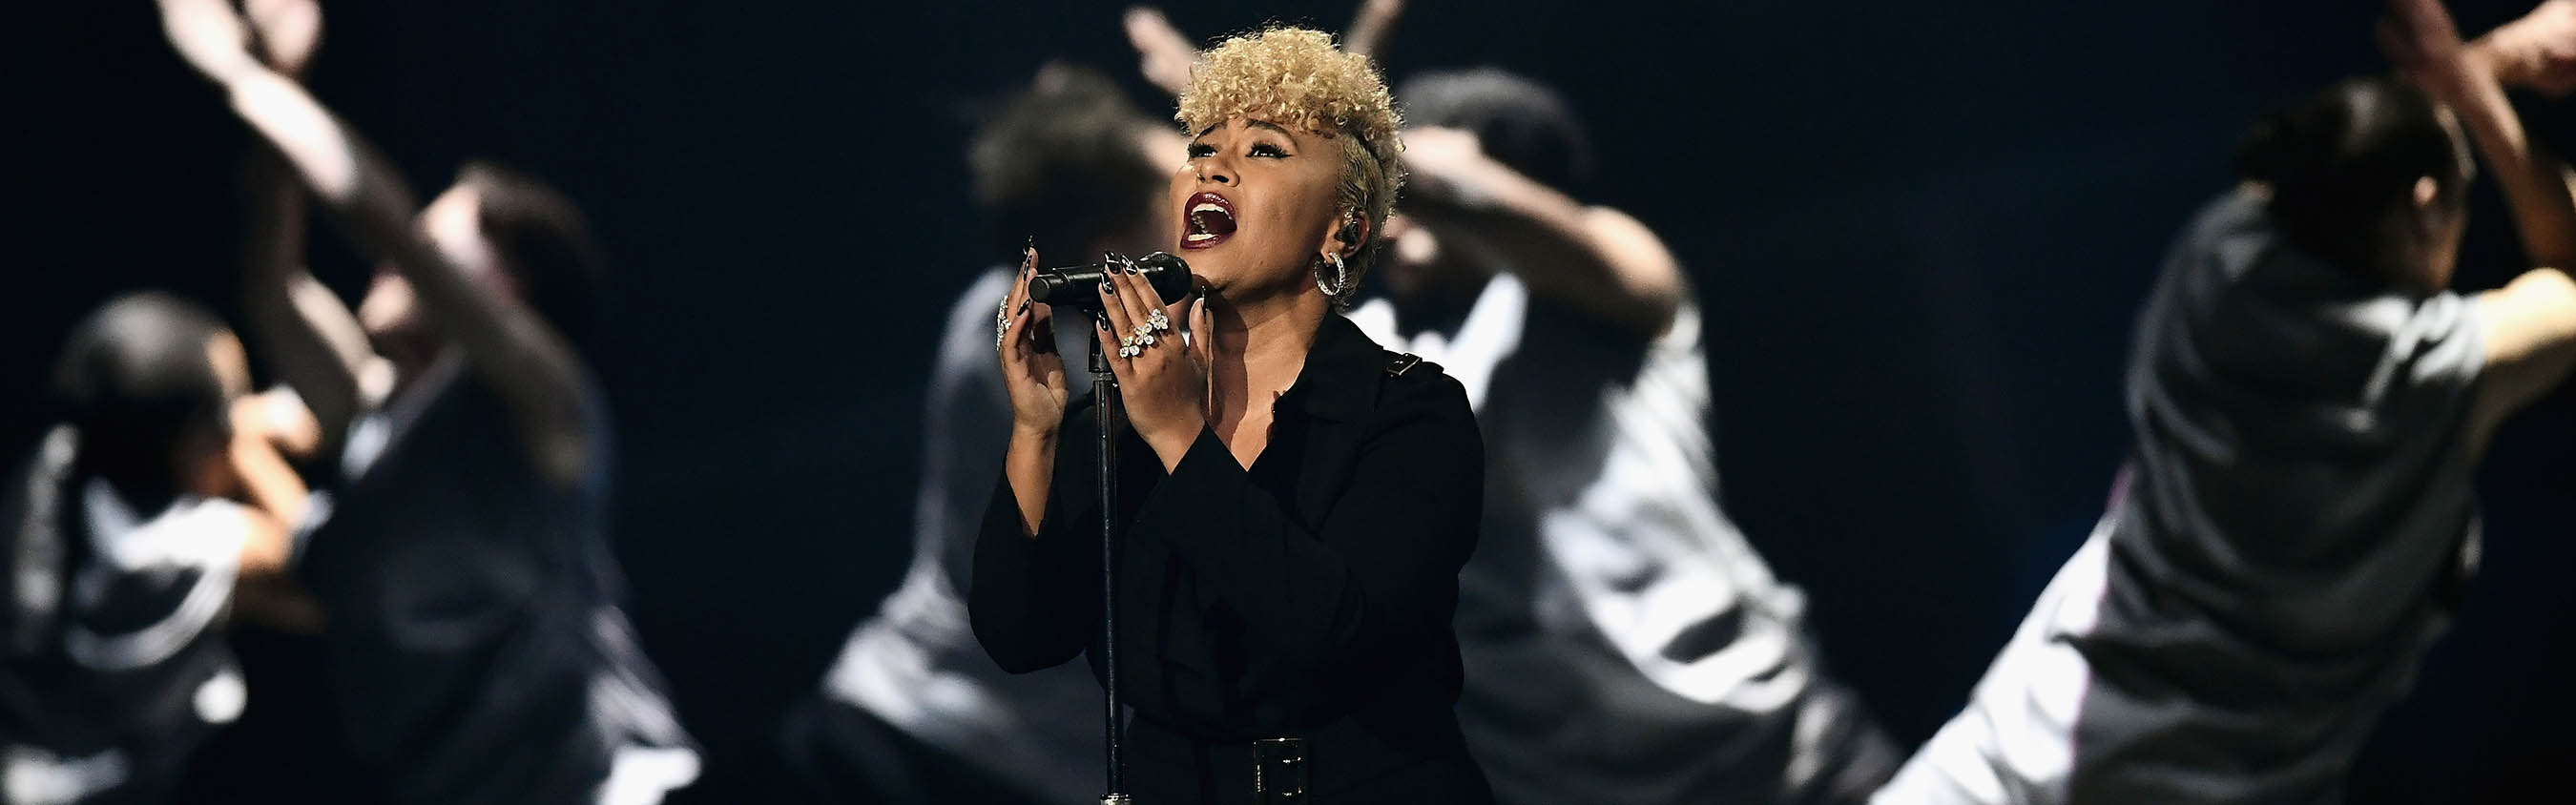 emeli-sande-Gareth Cattermole/Getty Images